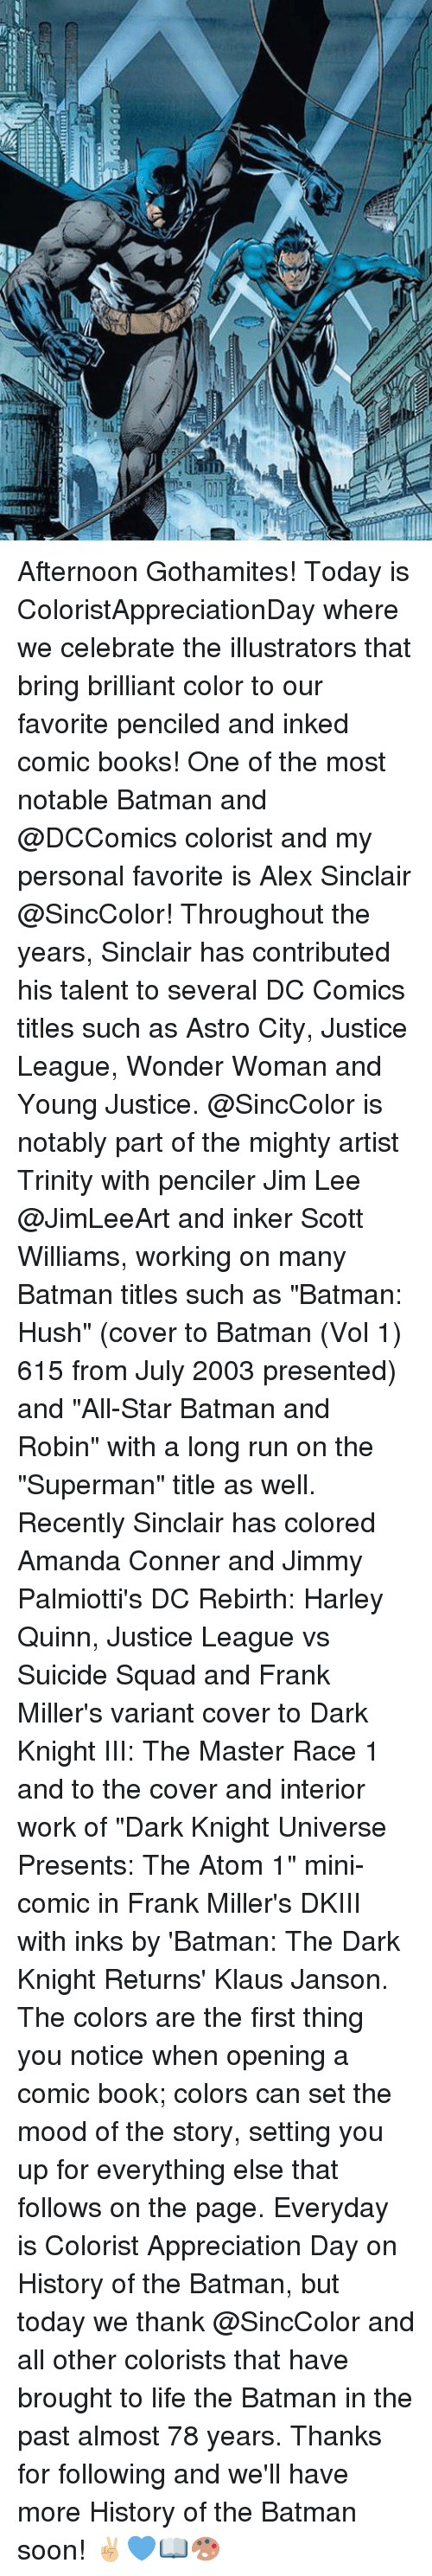 """Young Justice: Afternoon Gothamites! Today is ColoristAppreciationDay where we celebrate the illustrators that bring brilliant color to our favorite penciled and inked comic books! One of the most notable Batman and @DCComics colorist and my personal favorite is Alex Sinclair @SincColor! Throughout the years, Sinclair has contributed his talent to several DC Comics titles such as Astro City, Justice League, Wonder Woman and Young Justice. @SincColor is notably part of the mighty artist Trinity with penciler Jim Lee @JimLeeArt and inker Scott Williams, working on many Batman titles such as """"Batman: Hush"""" (cover to Batman (Vol 1) 615 from July 2003 presented) and """"All-Star Batman and Robin"""" with a long run on the """"Superman"""" title as well. Recently Sinclair has colored Amanda Conner and Jimmy Palmiotti's DC Rebirth: Harley Quinn, Justice League vs Suicide Squad and Frank Miller's variant cover to Dark Knight III: The Master Race 1 and to the cover and interior work of """"Dark Knight Universe Presents: The Atom 1"""" mini-comic in Frank Miller's DKIII with inks by 'Batman: The Dark Knight Returns' Klaus Janson. The colors are the first thing you notice when opening a comic book; colors can set the mood of the story, setting you up for everything else that follows on the page. Everyday is Colorist Appreciation Day on History of the Batman, but today we thank @SincColor and all other colorists that have brought to life the Batman in the past almost 78 years. Thanks for following and we'll have more History of the Batman soon! ✌🏼️💙📖🎨"""